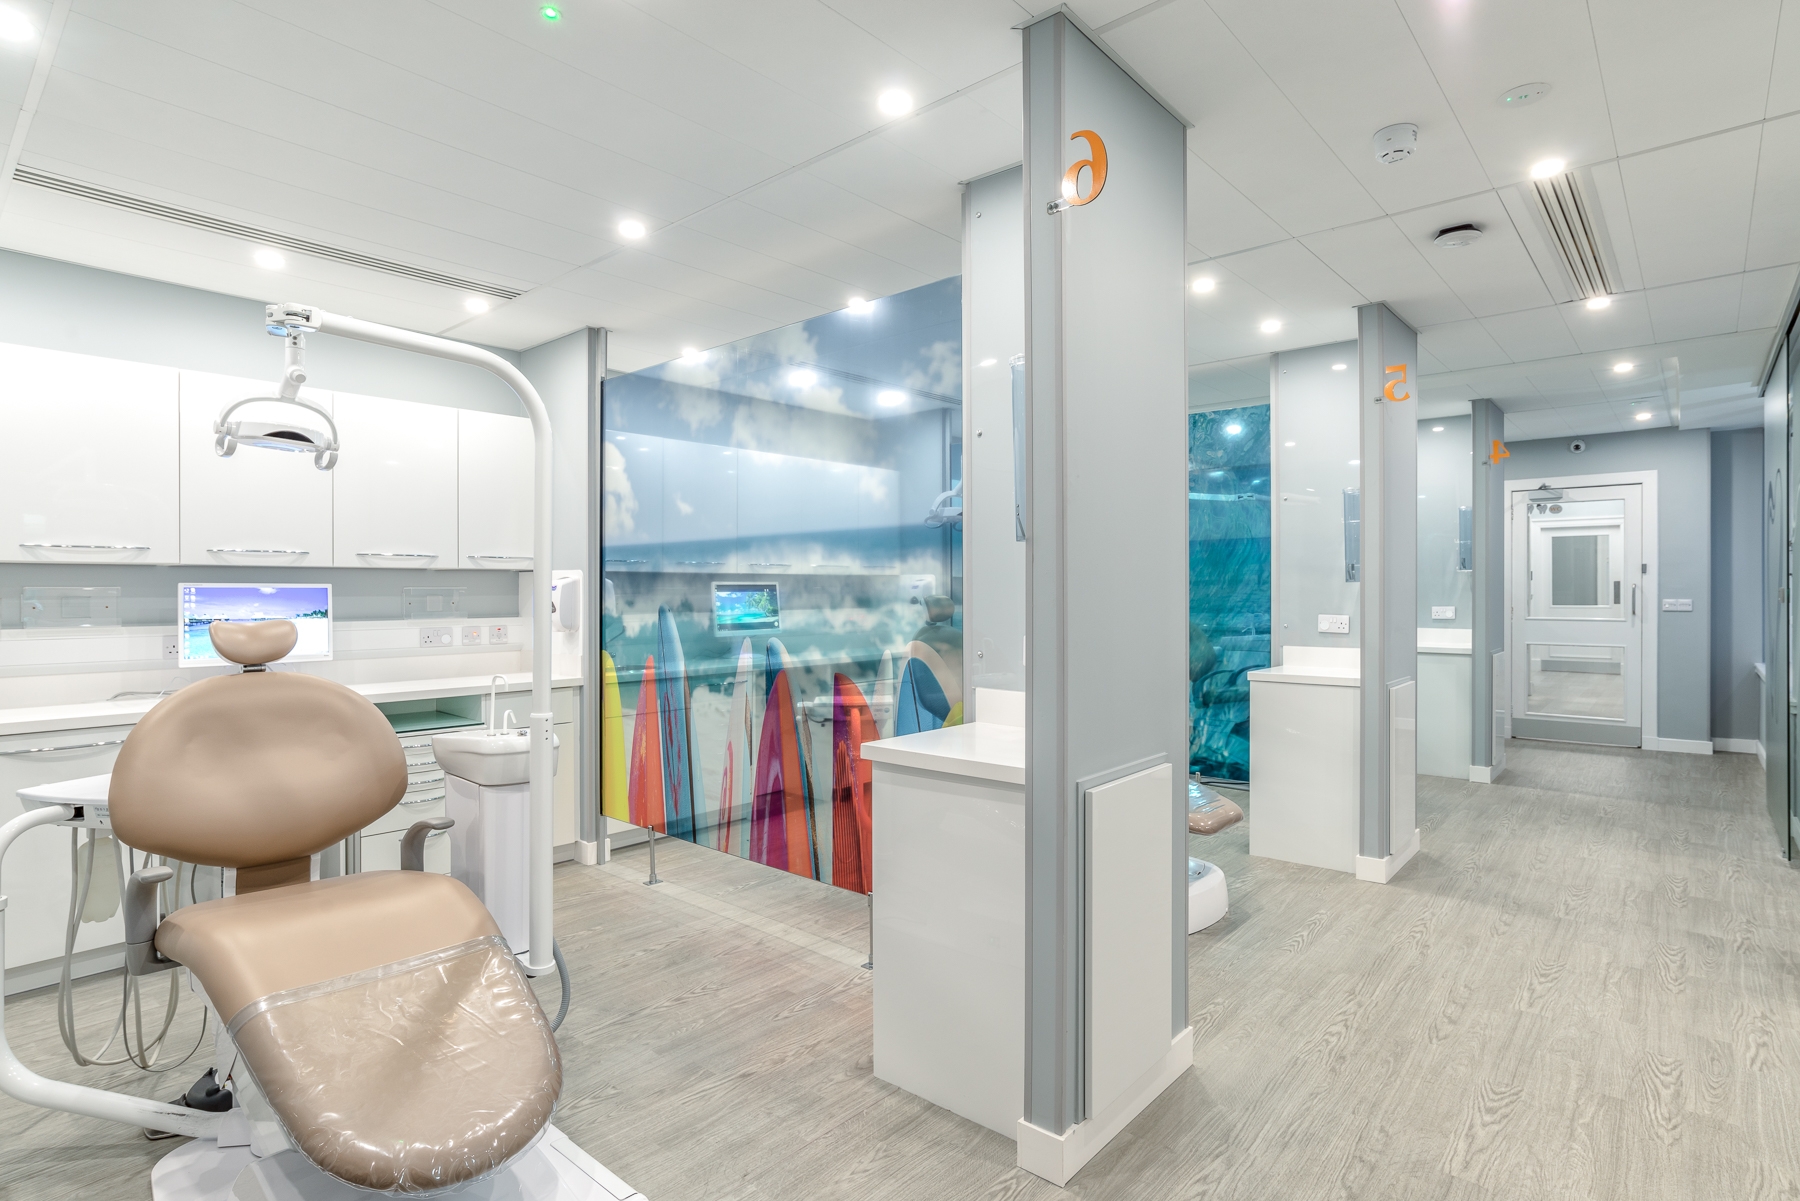 Orthodontic Clinic   Private Client   Aberdeen, Scotland